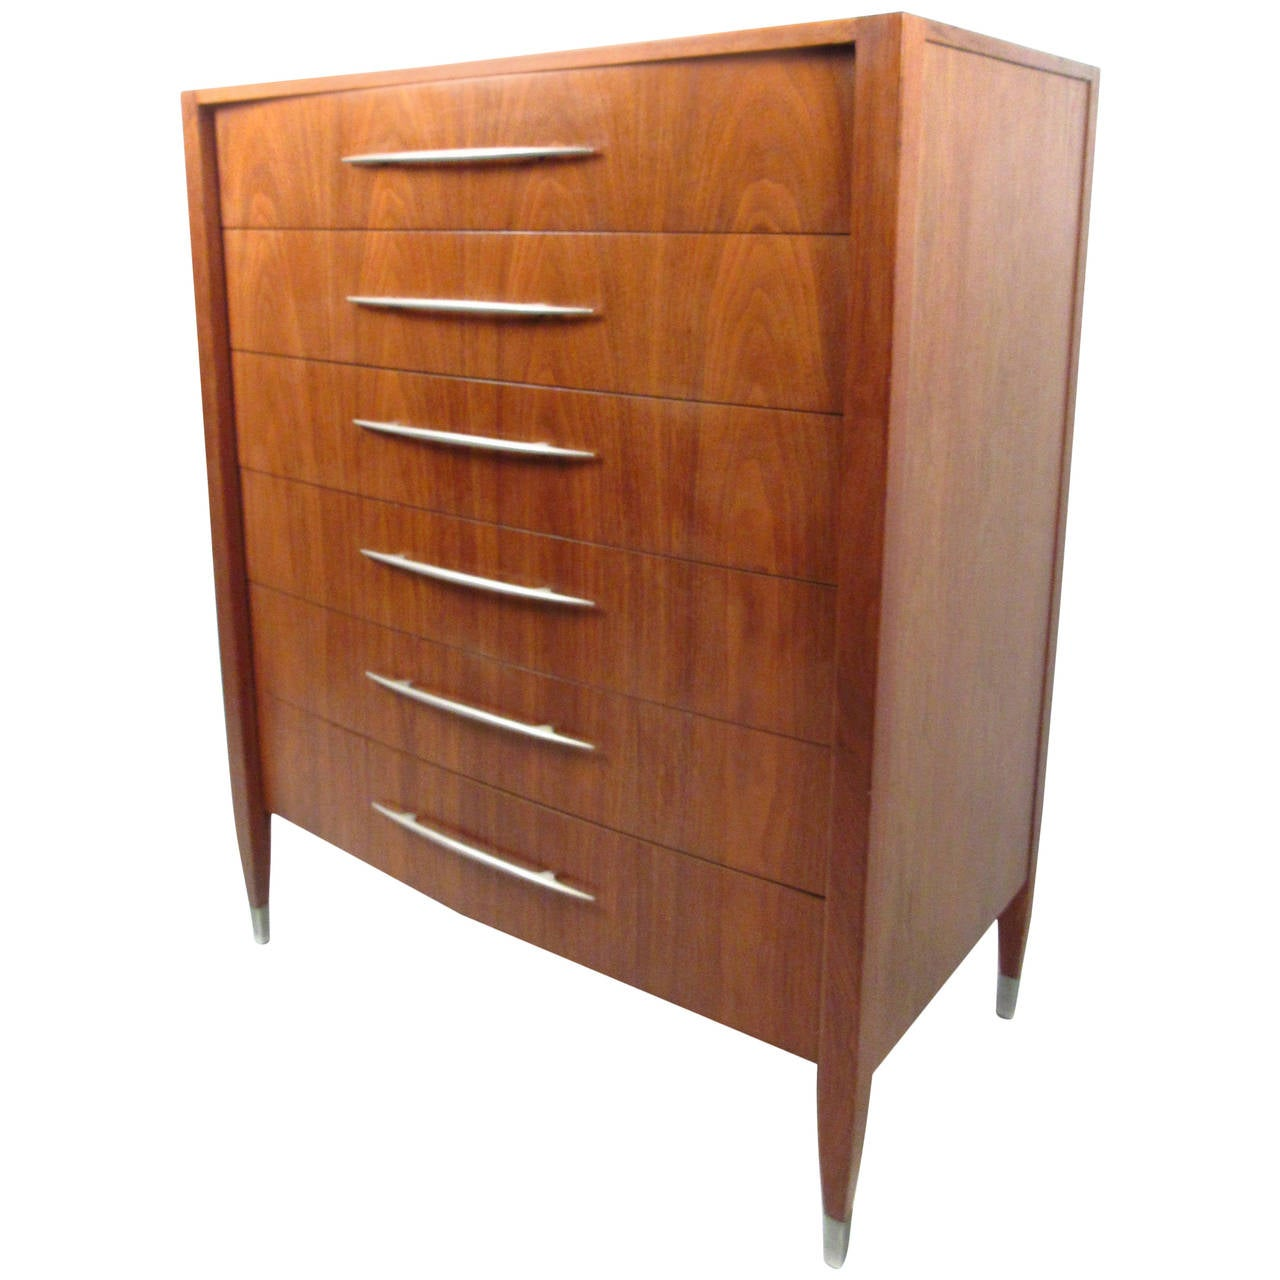 Midcentury Walnut Dresser With Chrome Accenting By Sligh Furniture For Sale At 1stdibs